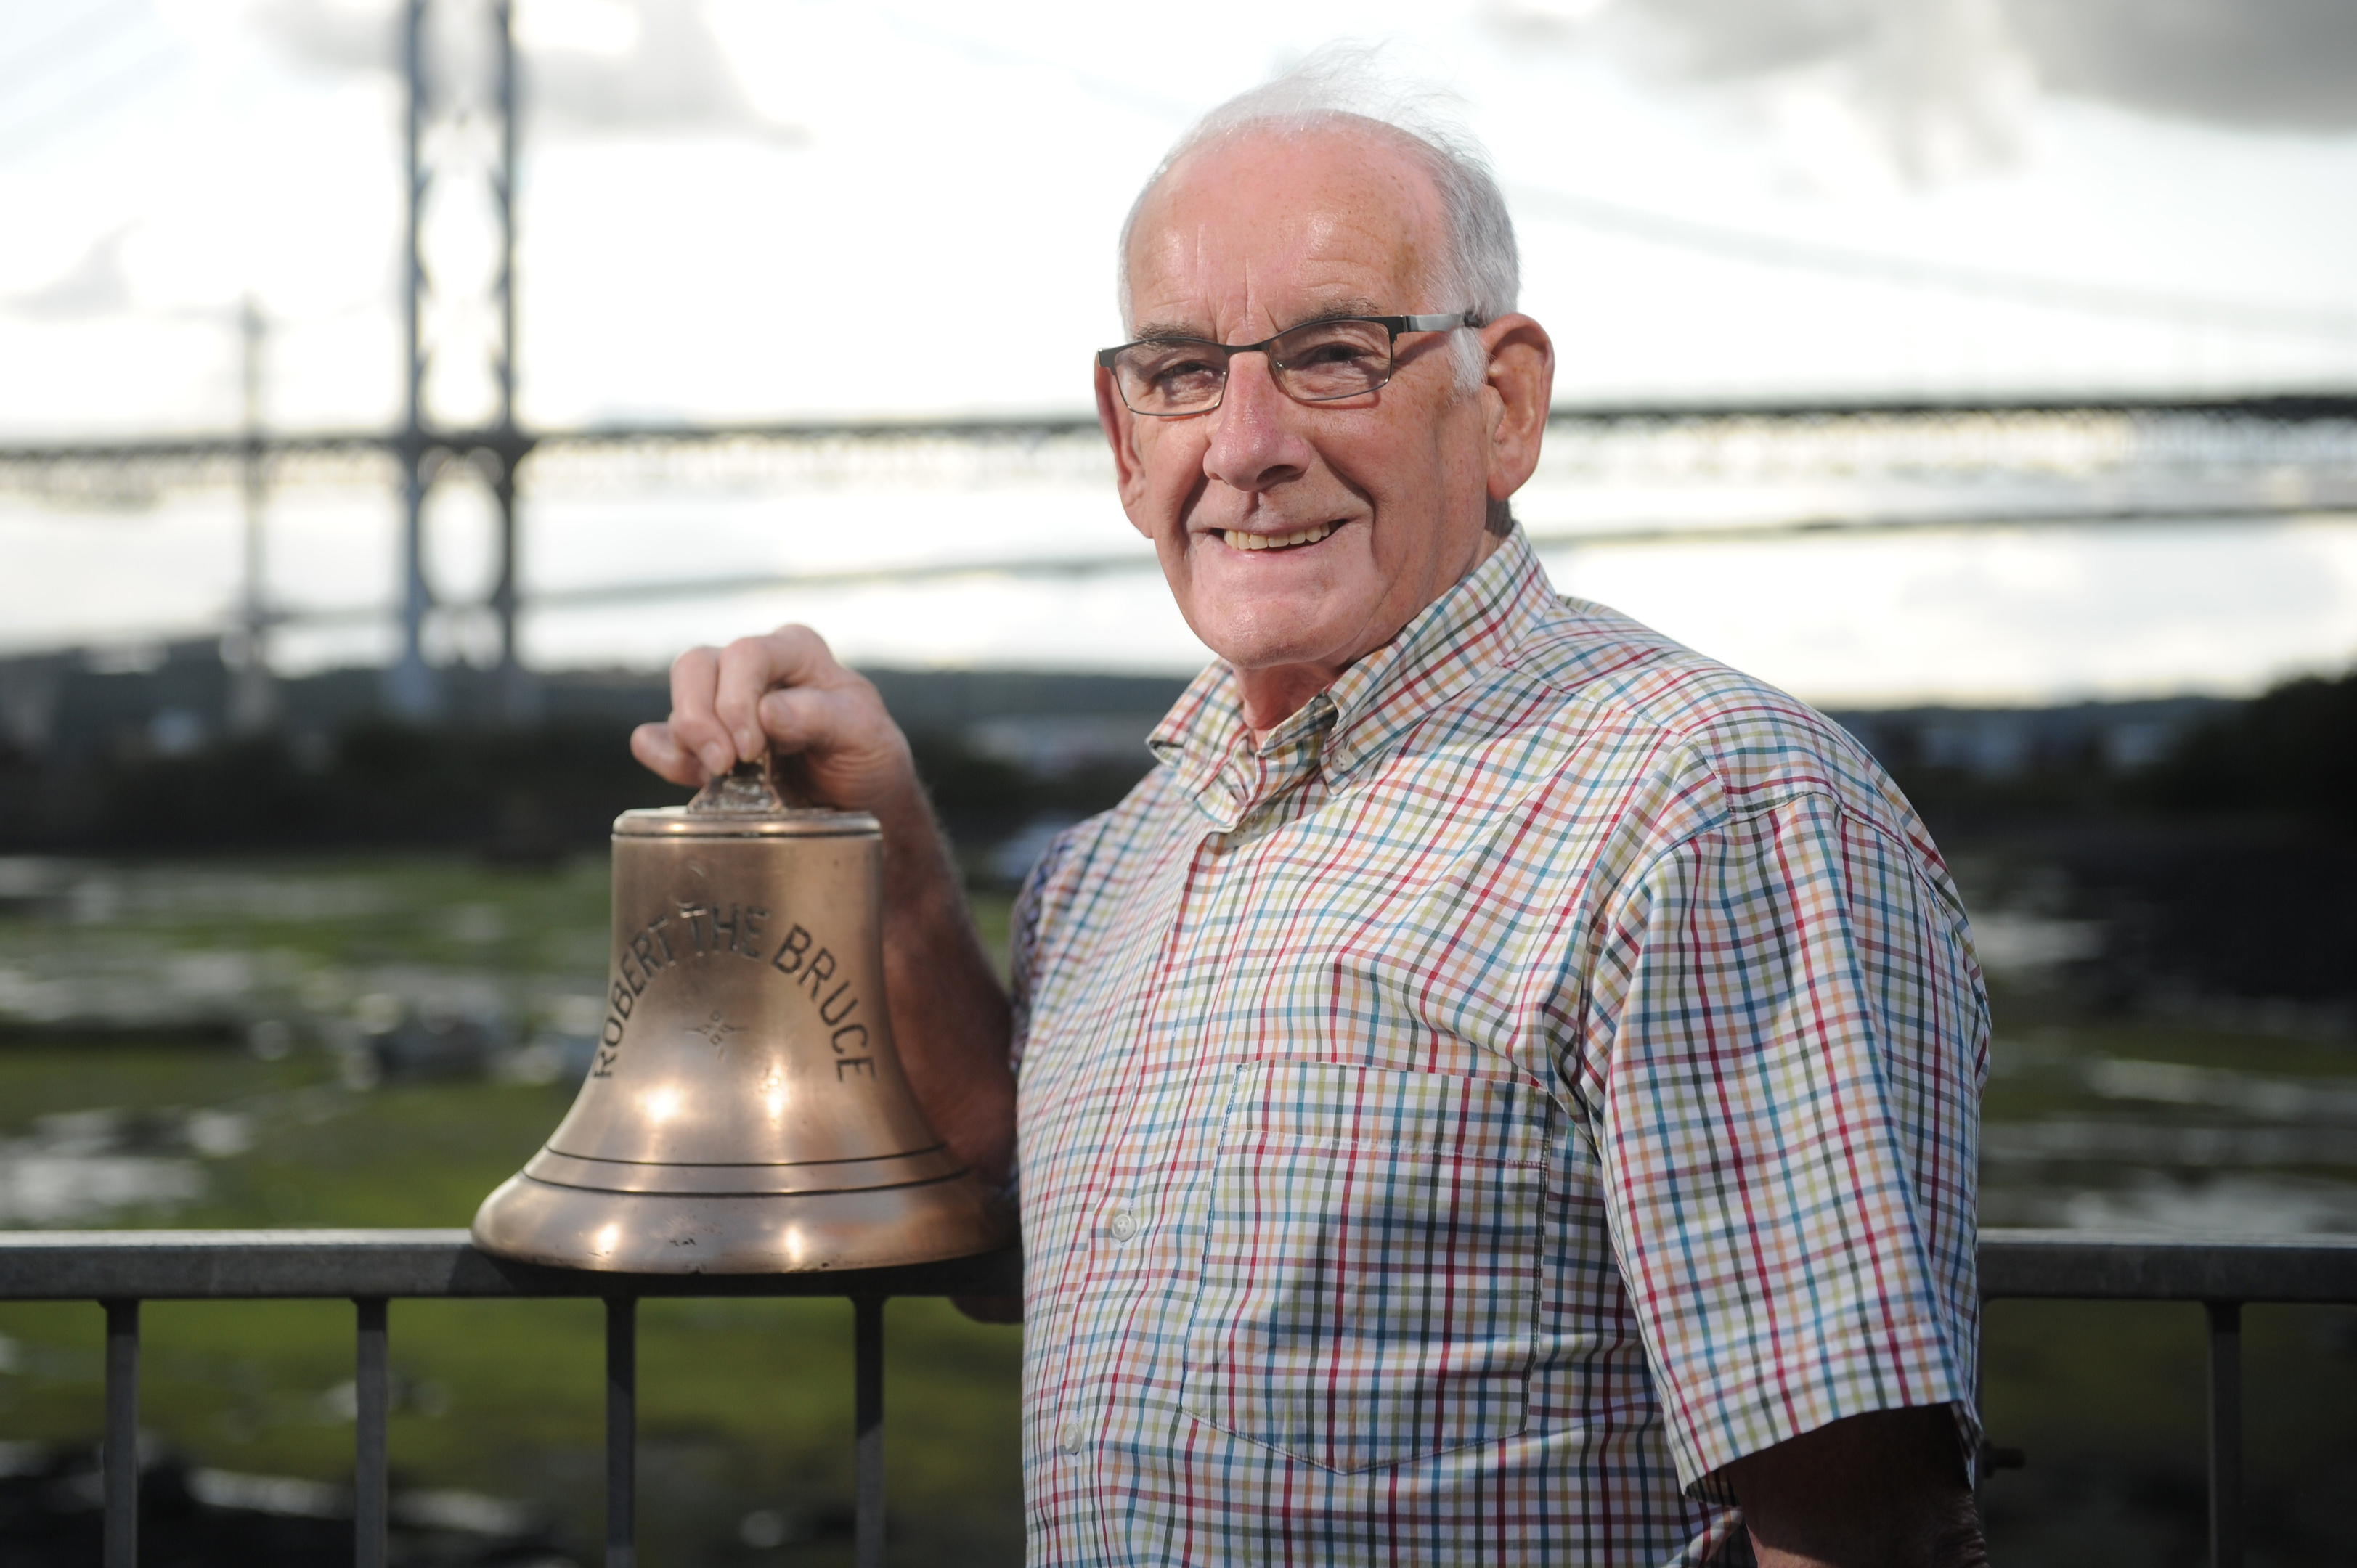 Mr Reid with his ferry bell